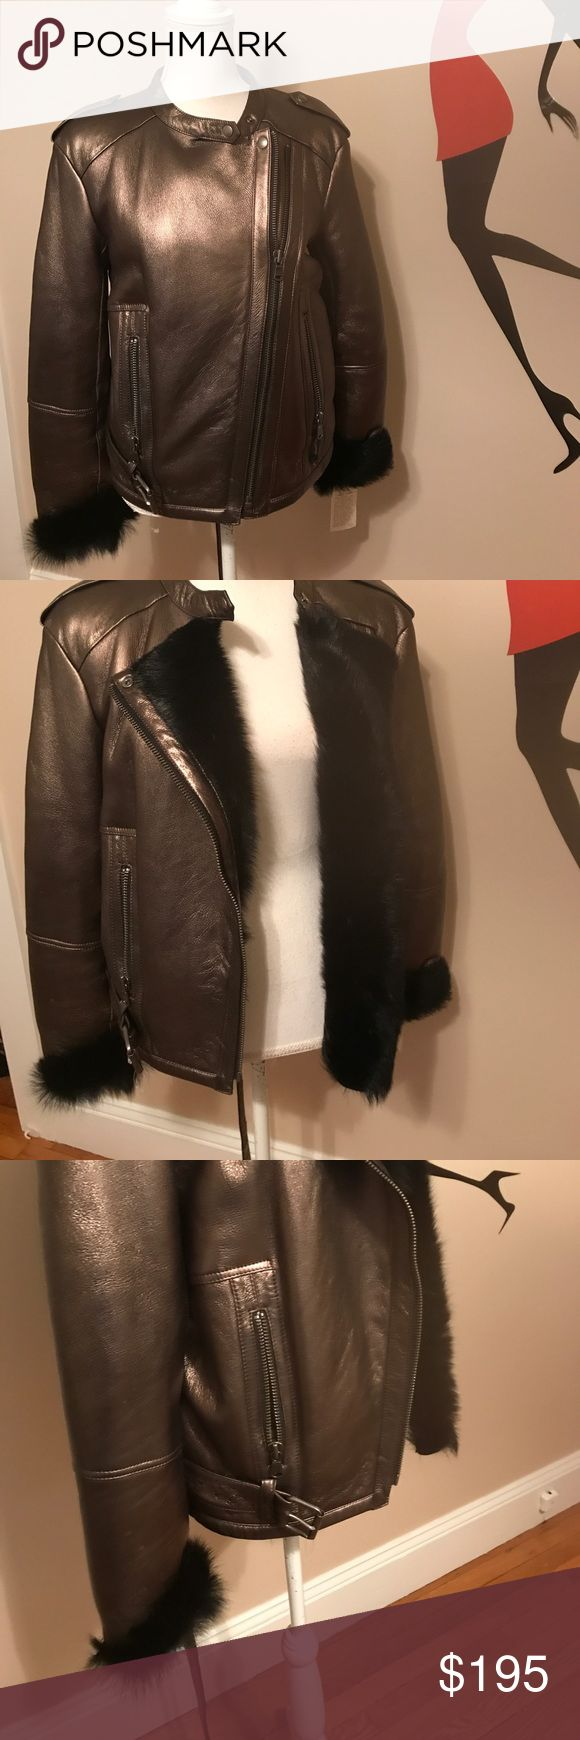 Gorgeous NWT Gerard Darel leather bomber Gorgeous NWT Gerard Darel leather bomber jacket, fur lined. I'm not sure what the fur is.  This jacket retails for $2260, as shown on the tag. There is a small defect around the collar, as depicted in photo four.  It is a small tear. Therefore, I am offering this jacket at a very very affordable price. It is 24 inches long. Sleeve length is 24.armpit to armpit is 21 inches. Gerard Darel Jackets & Coats Utility Jackets